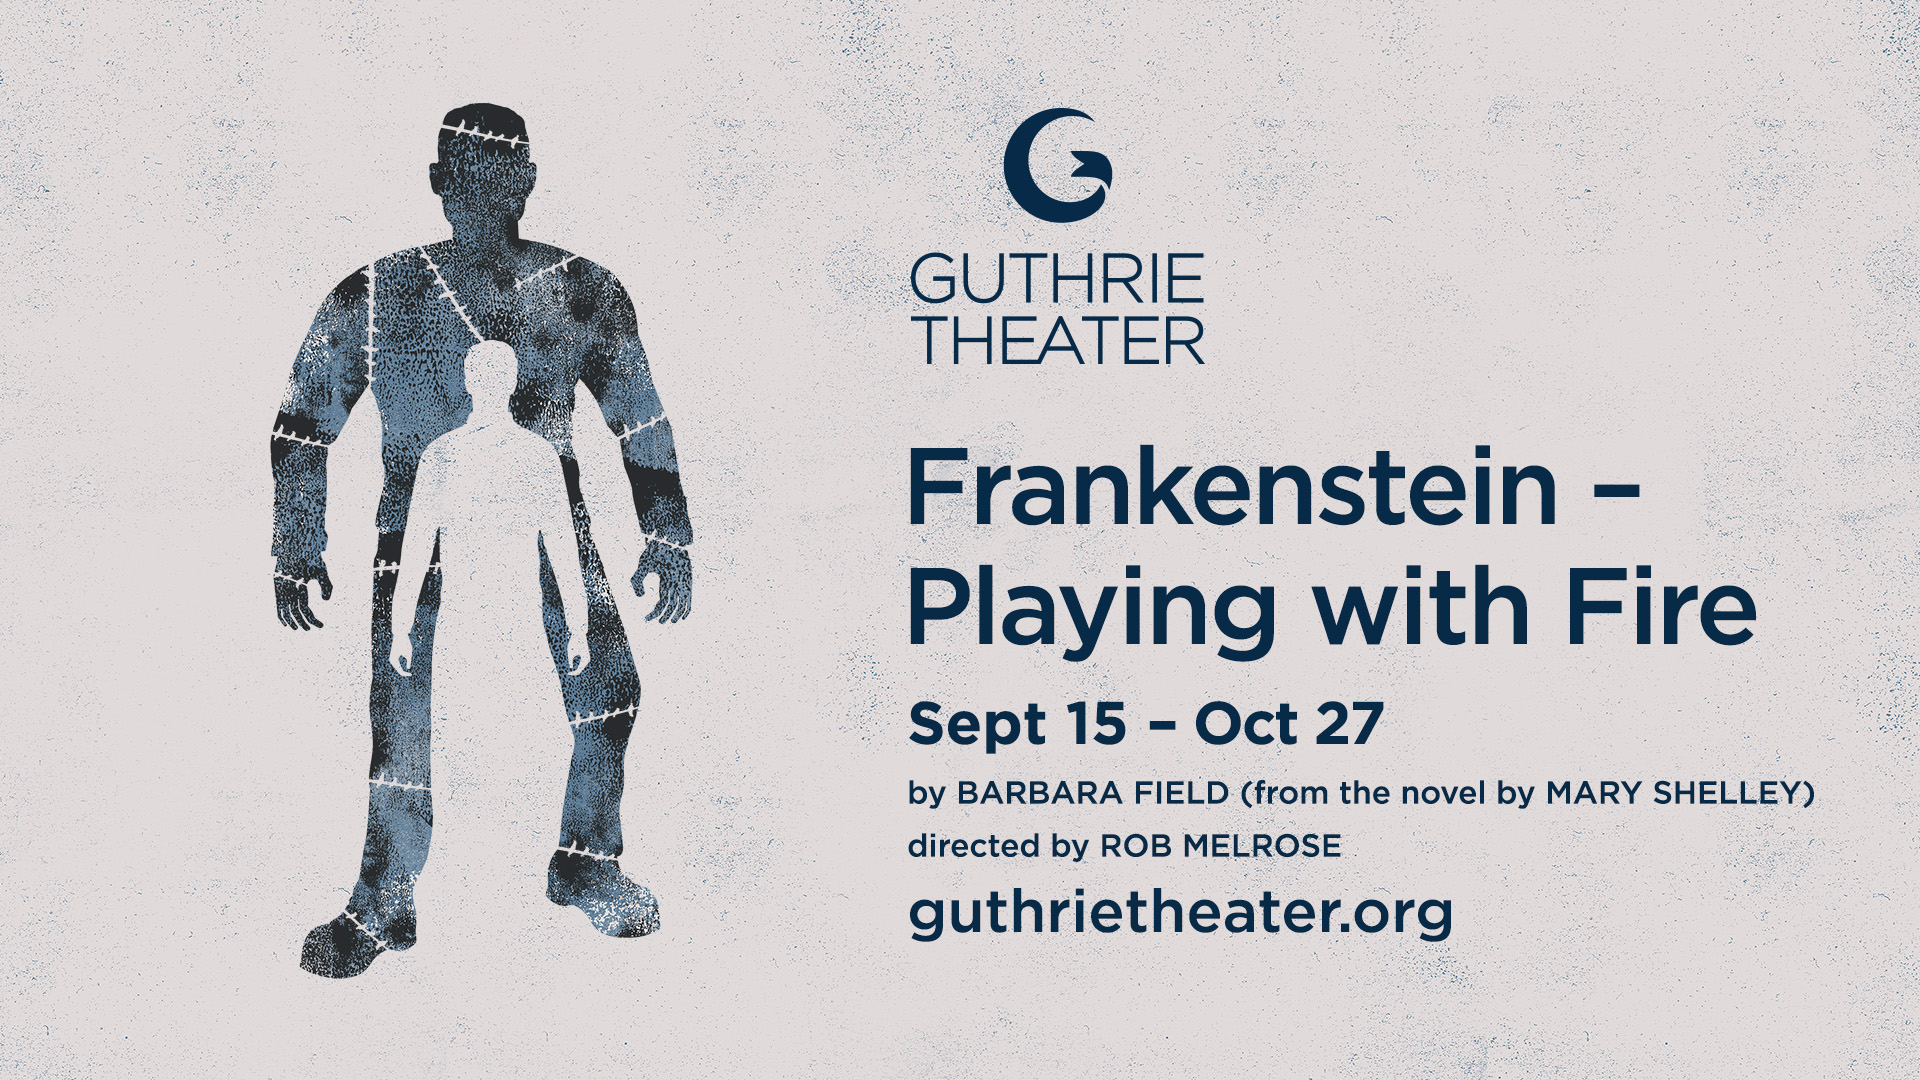 Presenting the Guthrie Theater's Frankenstein - Playing With Fire